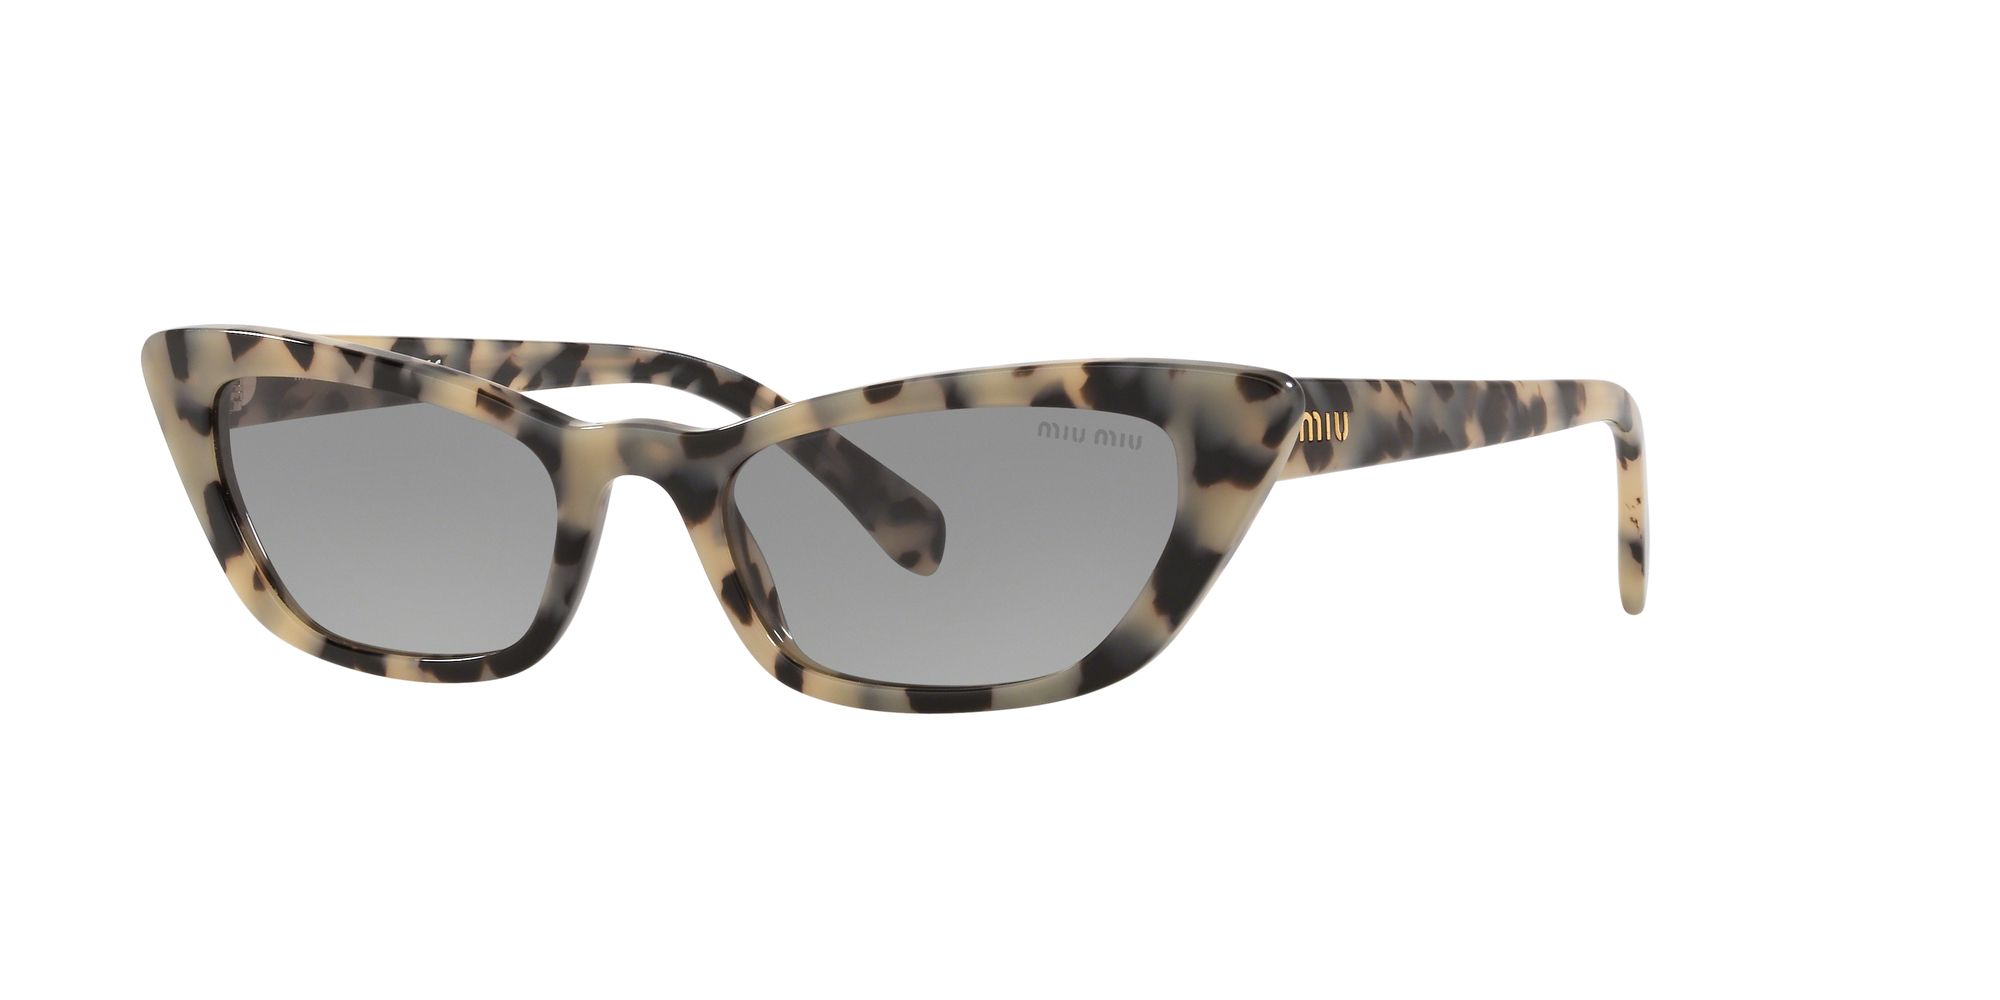 Miu Miu Miu Miu MU 10US Women's Cat's Eye Sunglasses